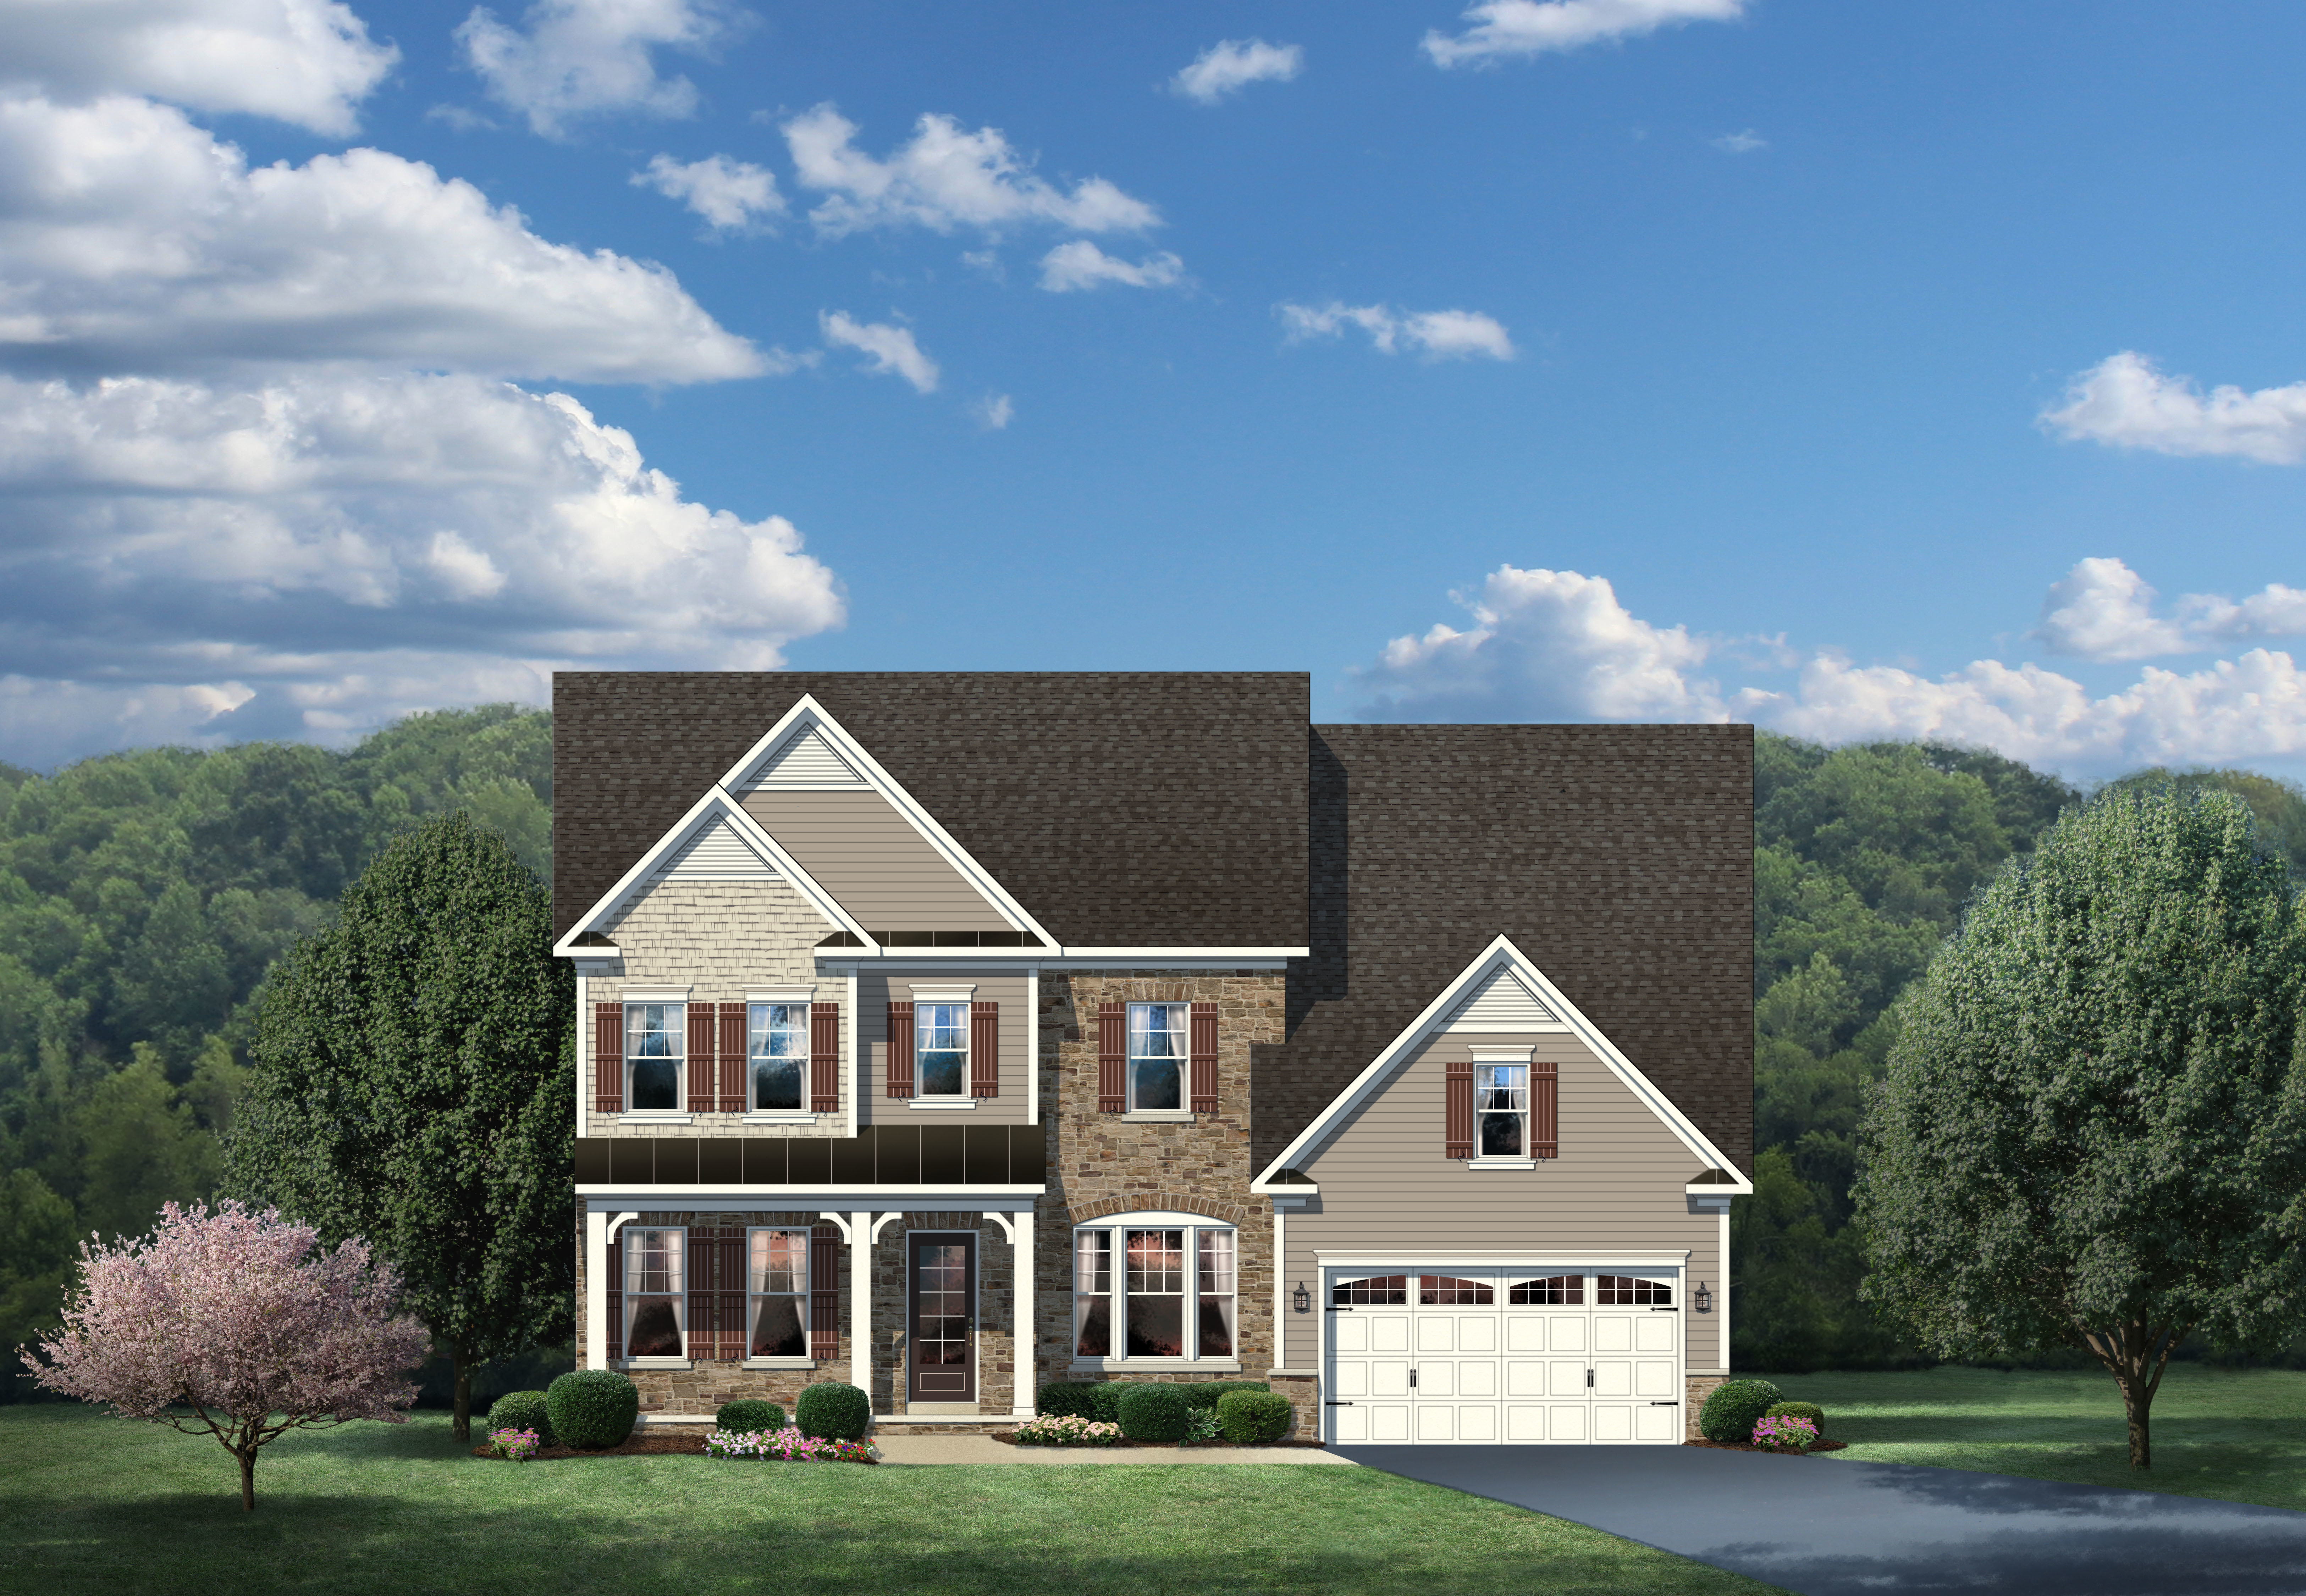 New empress ii home model for sale heartland homes for Heartland homes pittsburgh floor plans